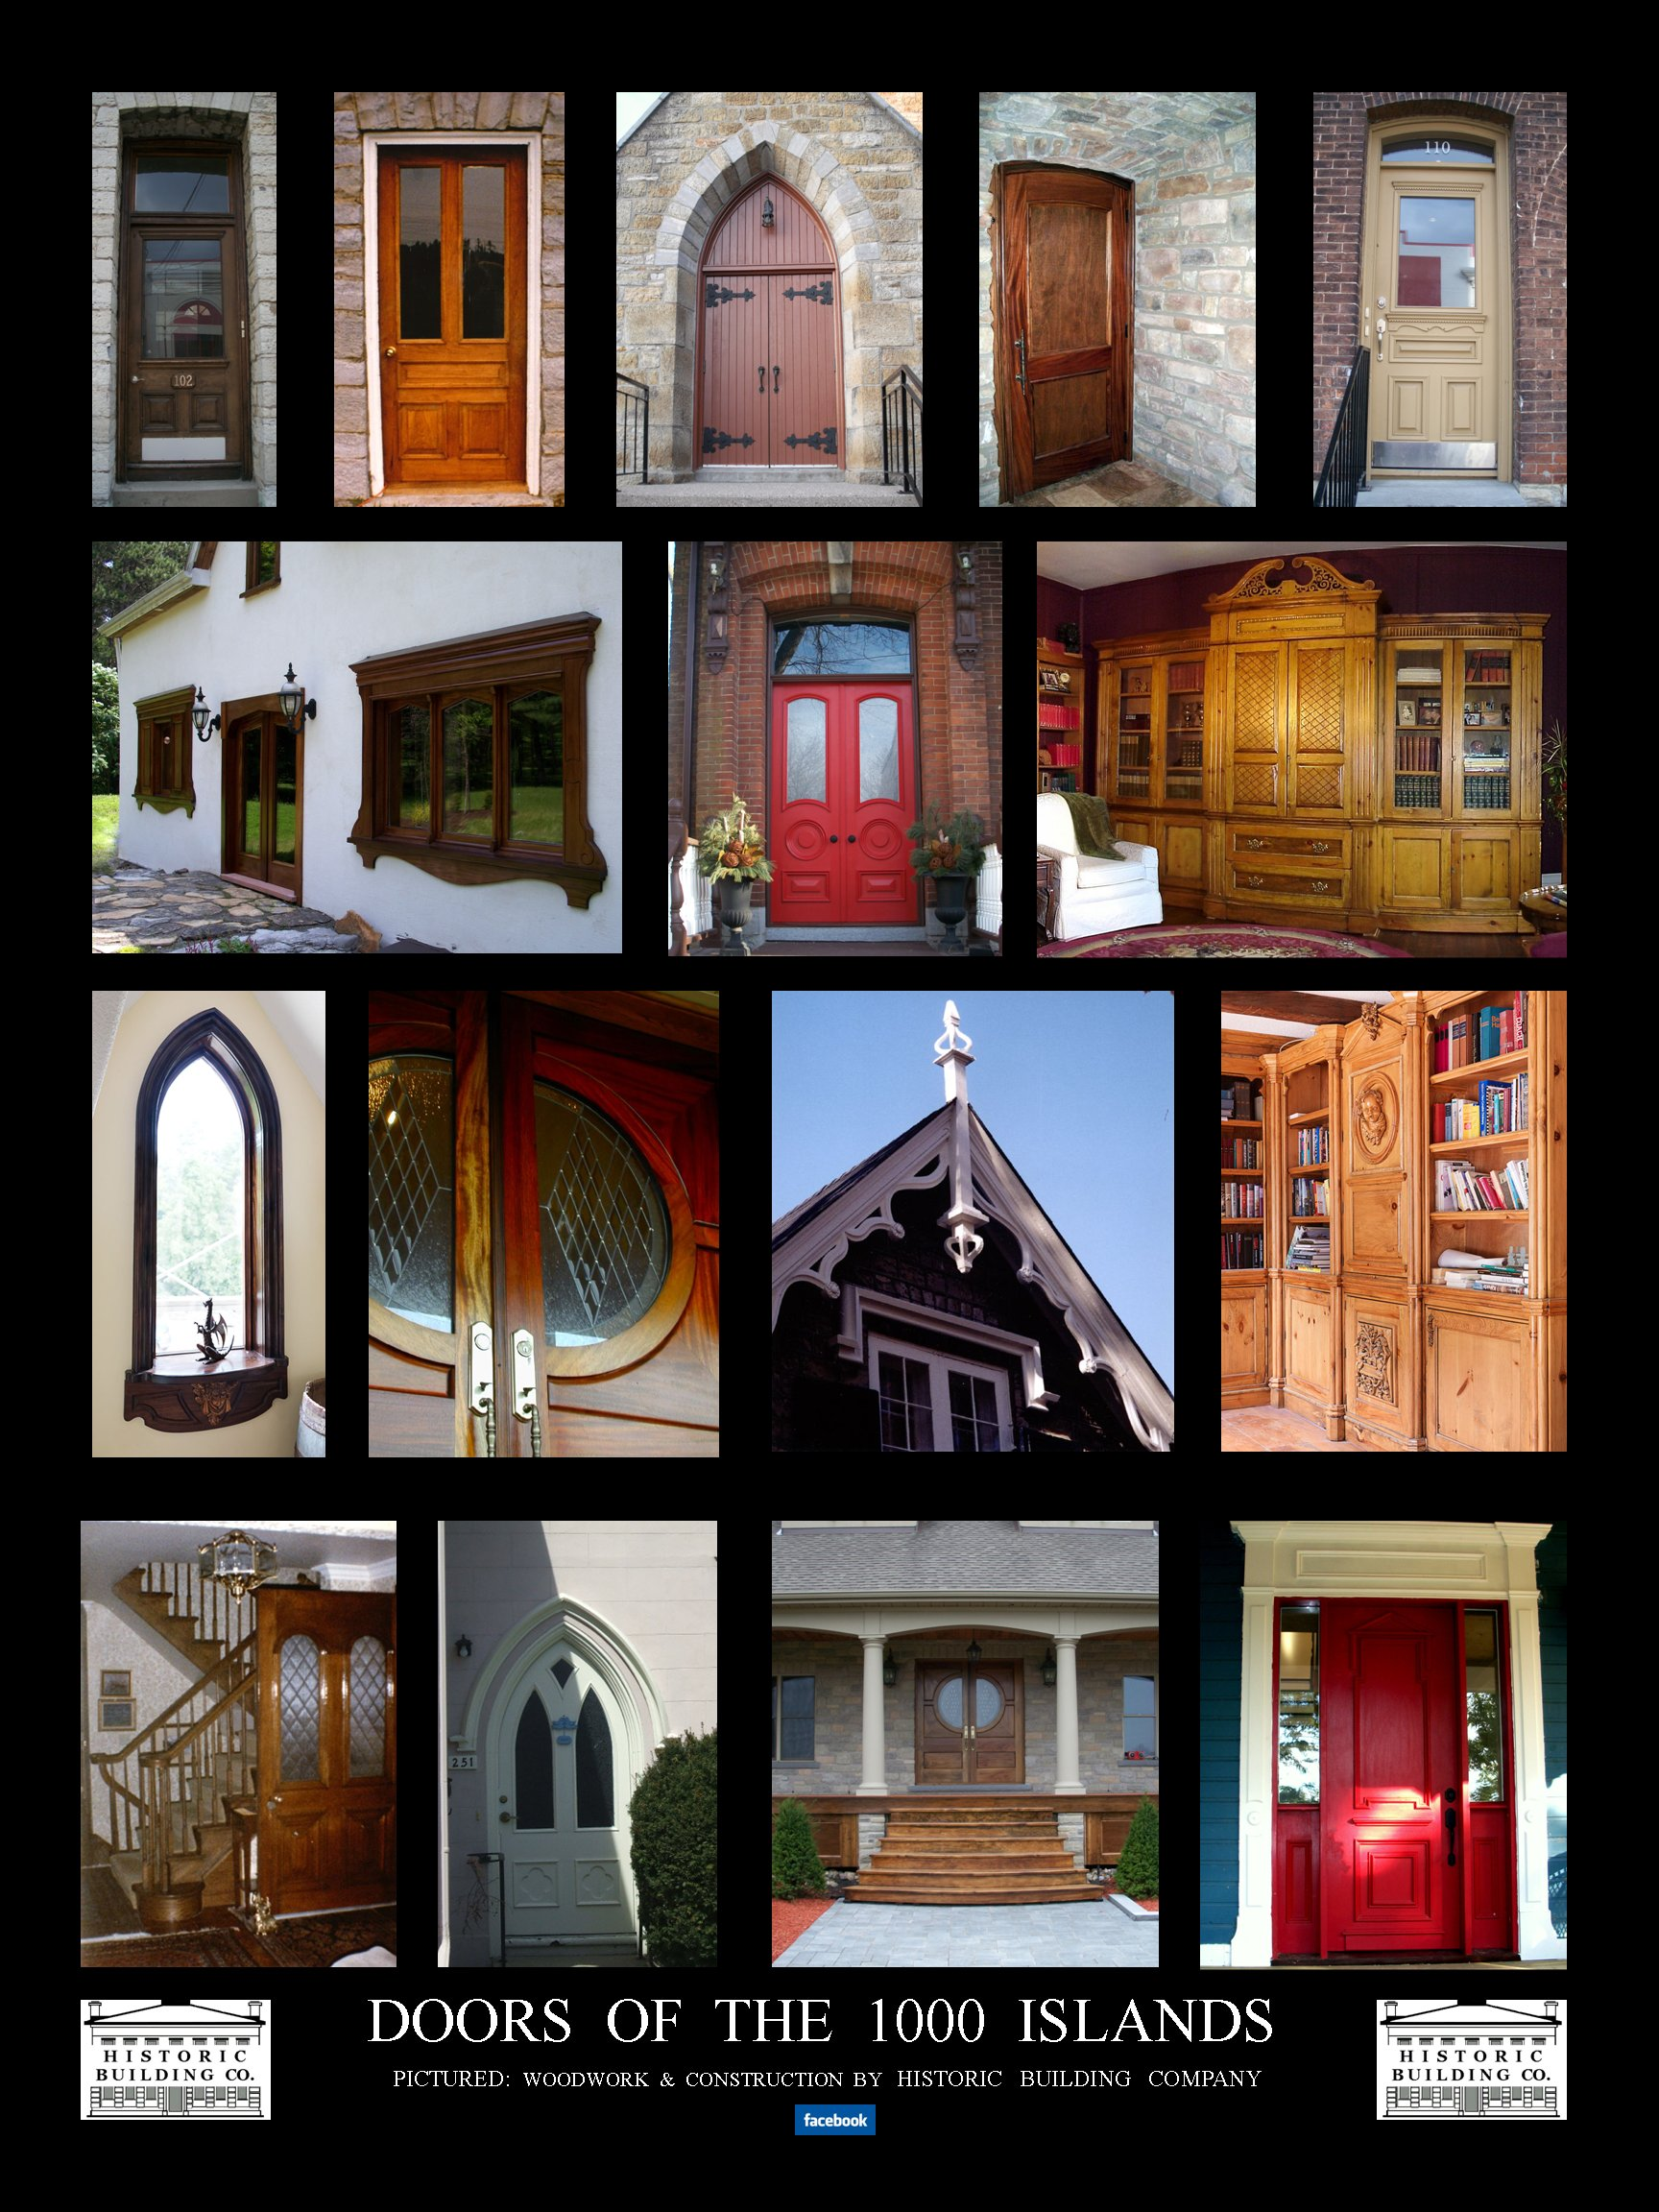 Doors of the 1000 Islands